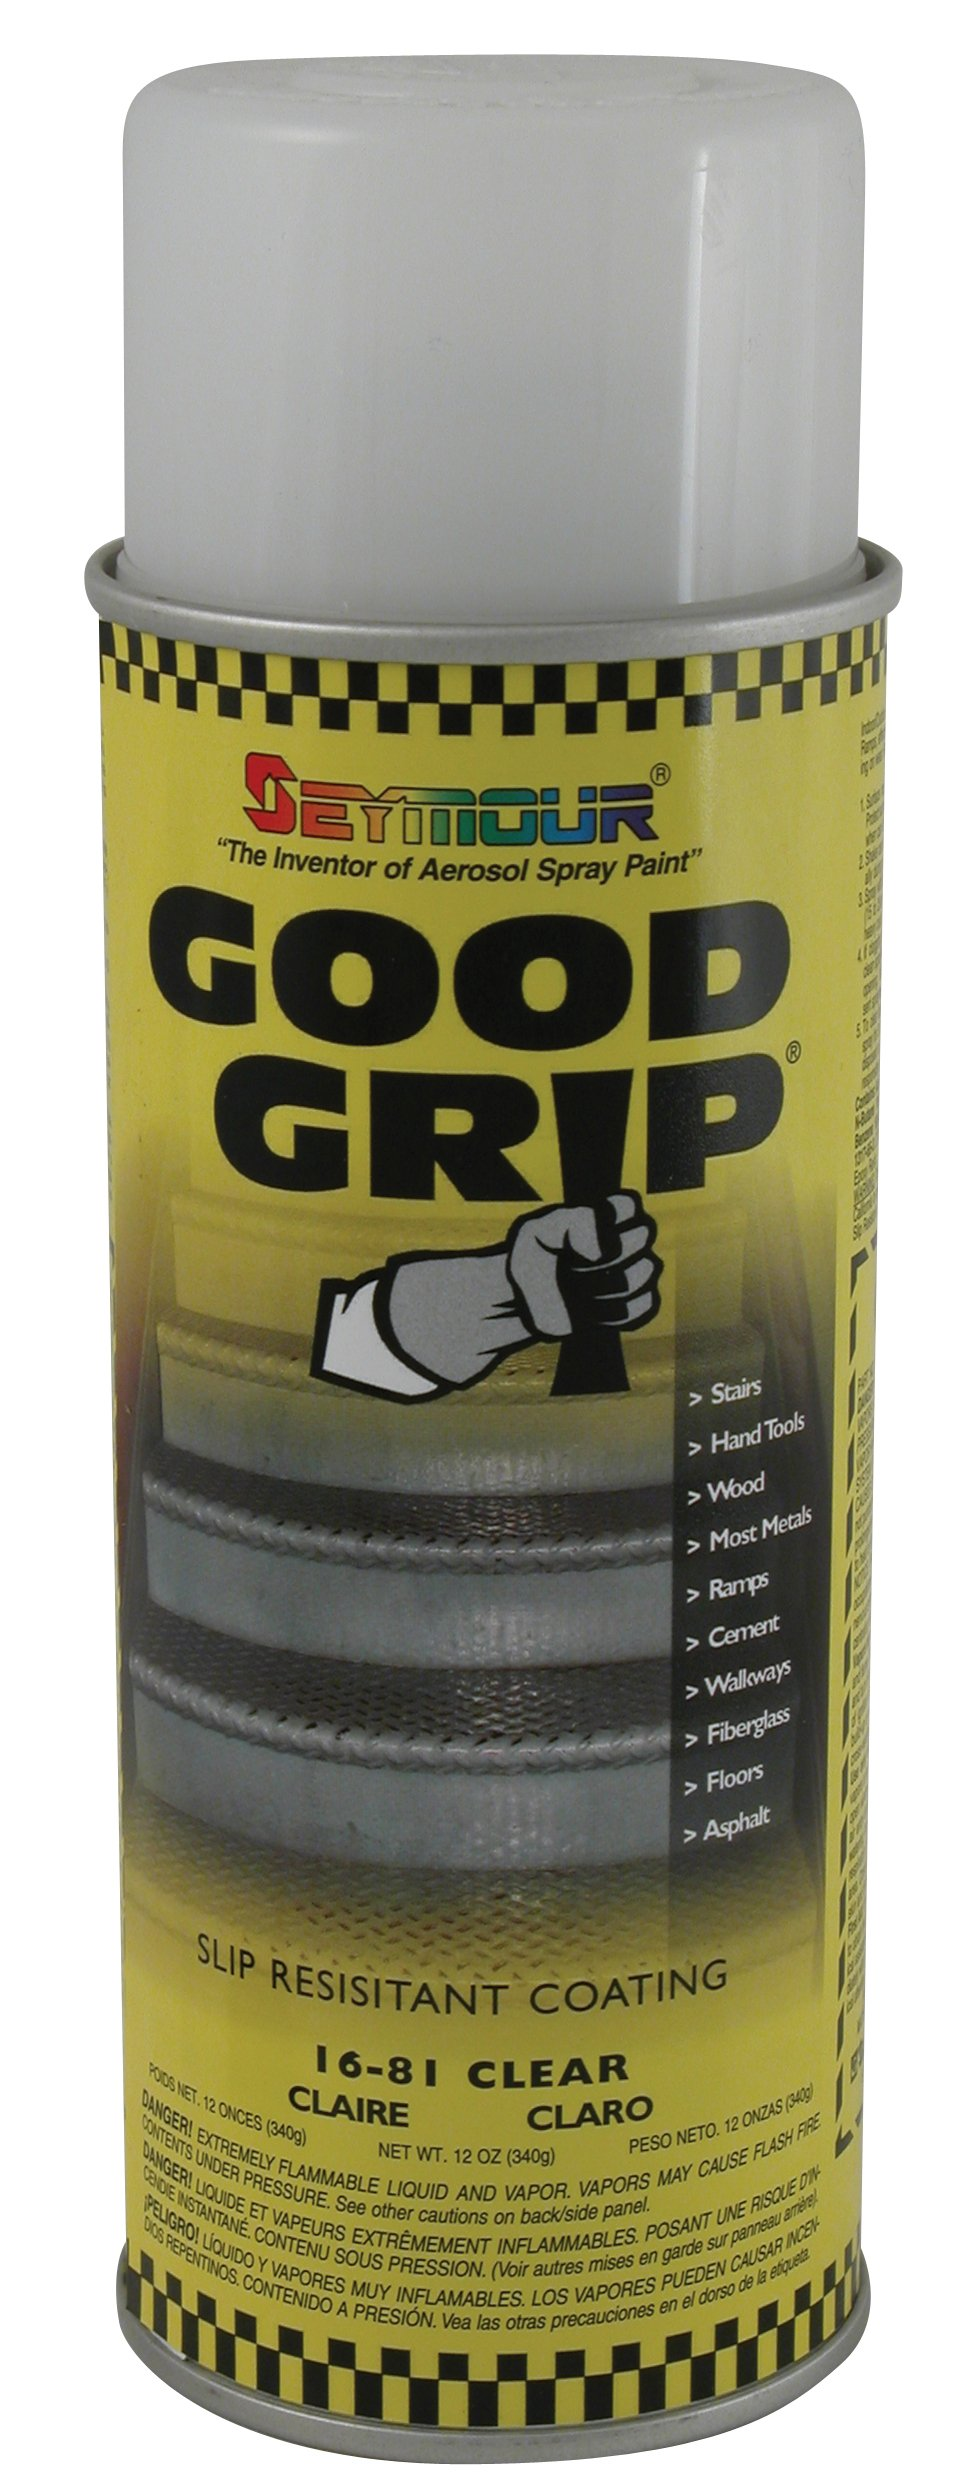 Seymour 16-081 Good Grip Slip Resistant Coating Spray, Clear